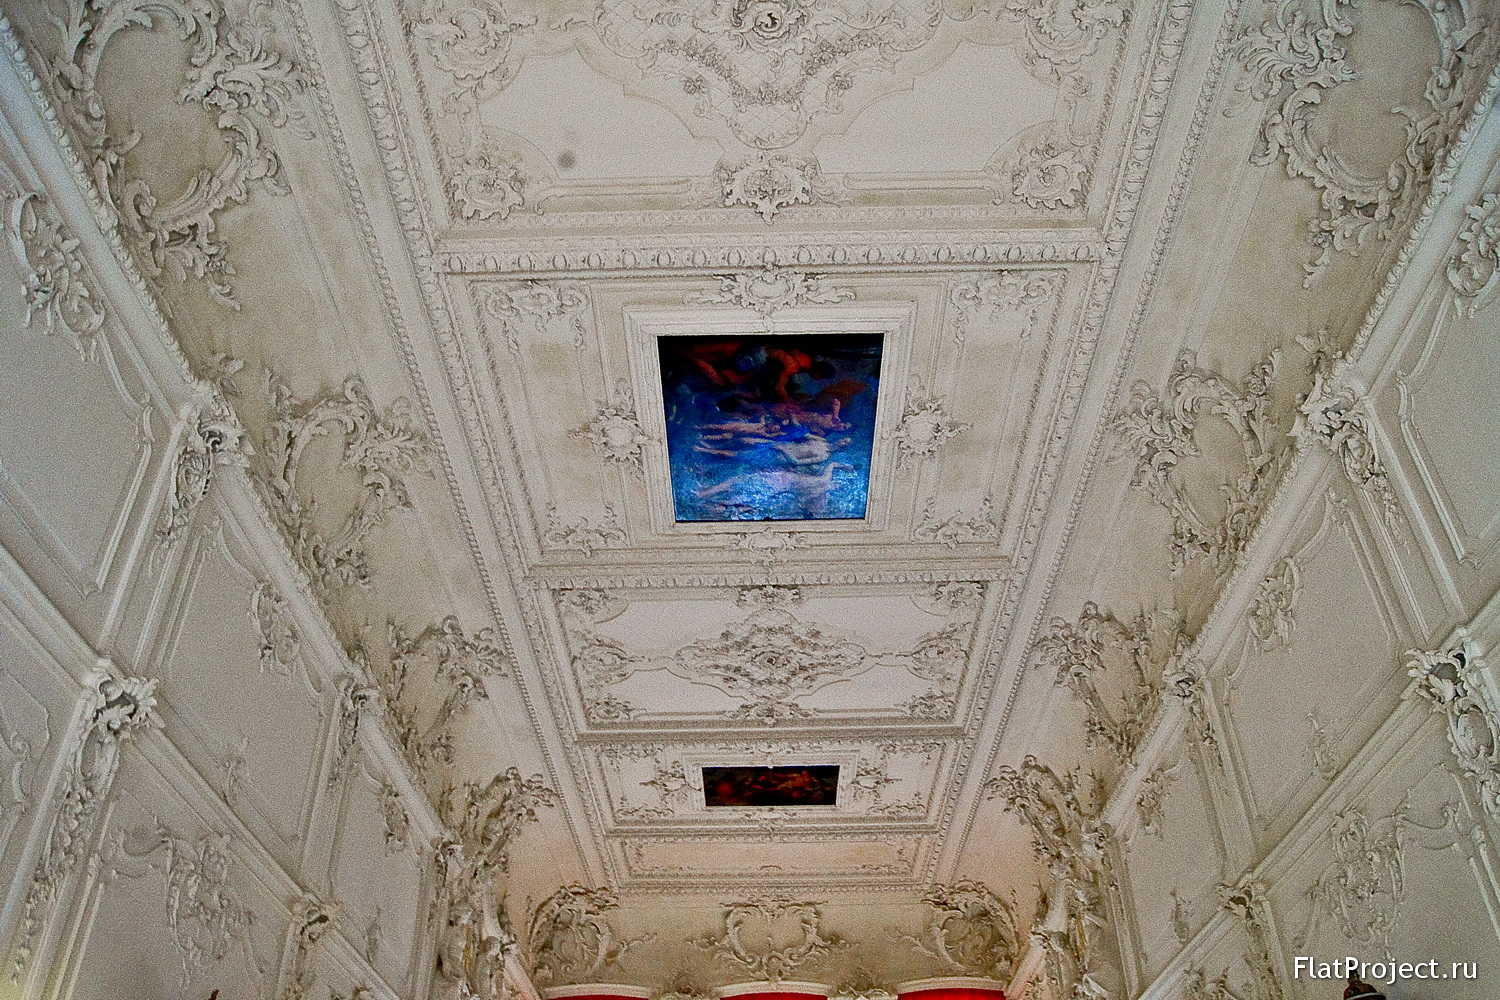 The Catherine Palace interiors – photo 12